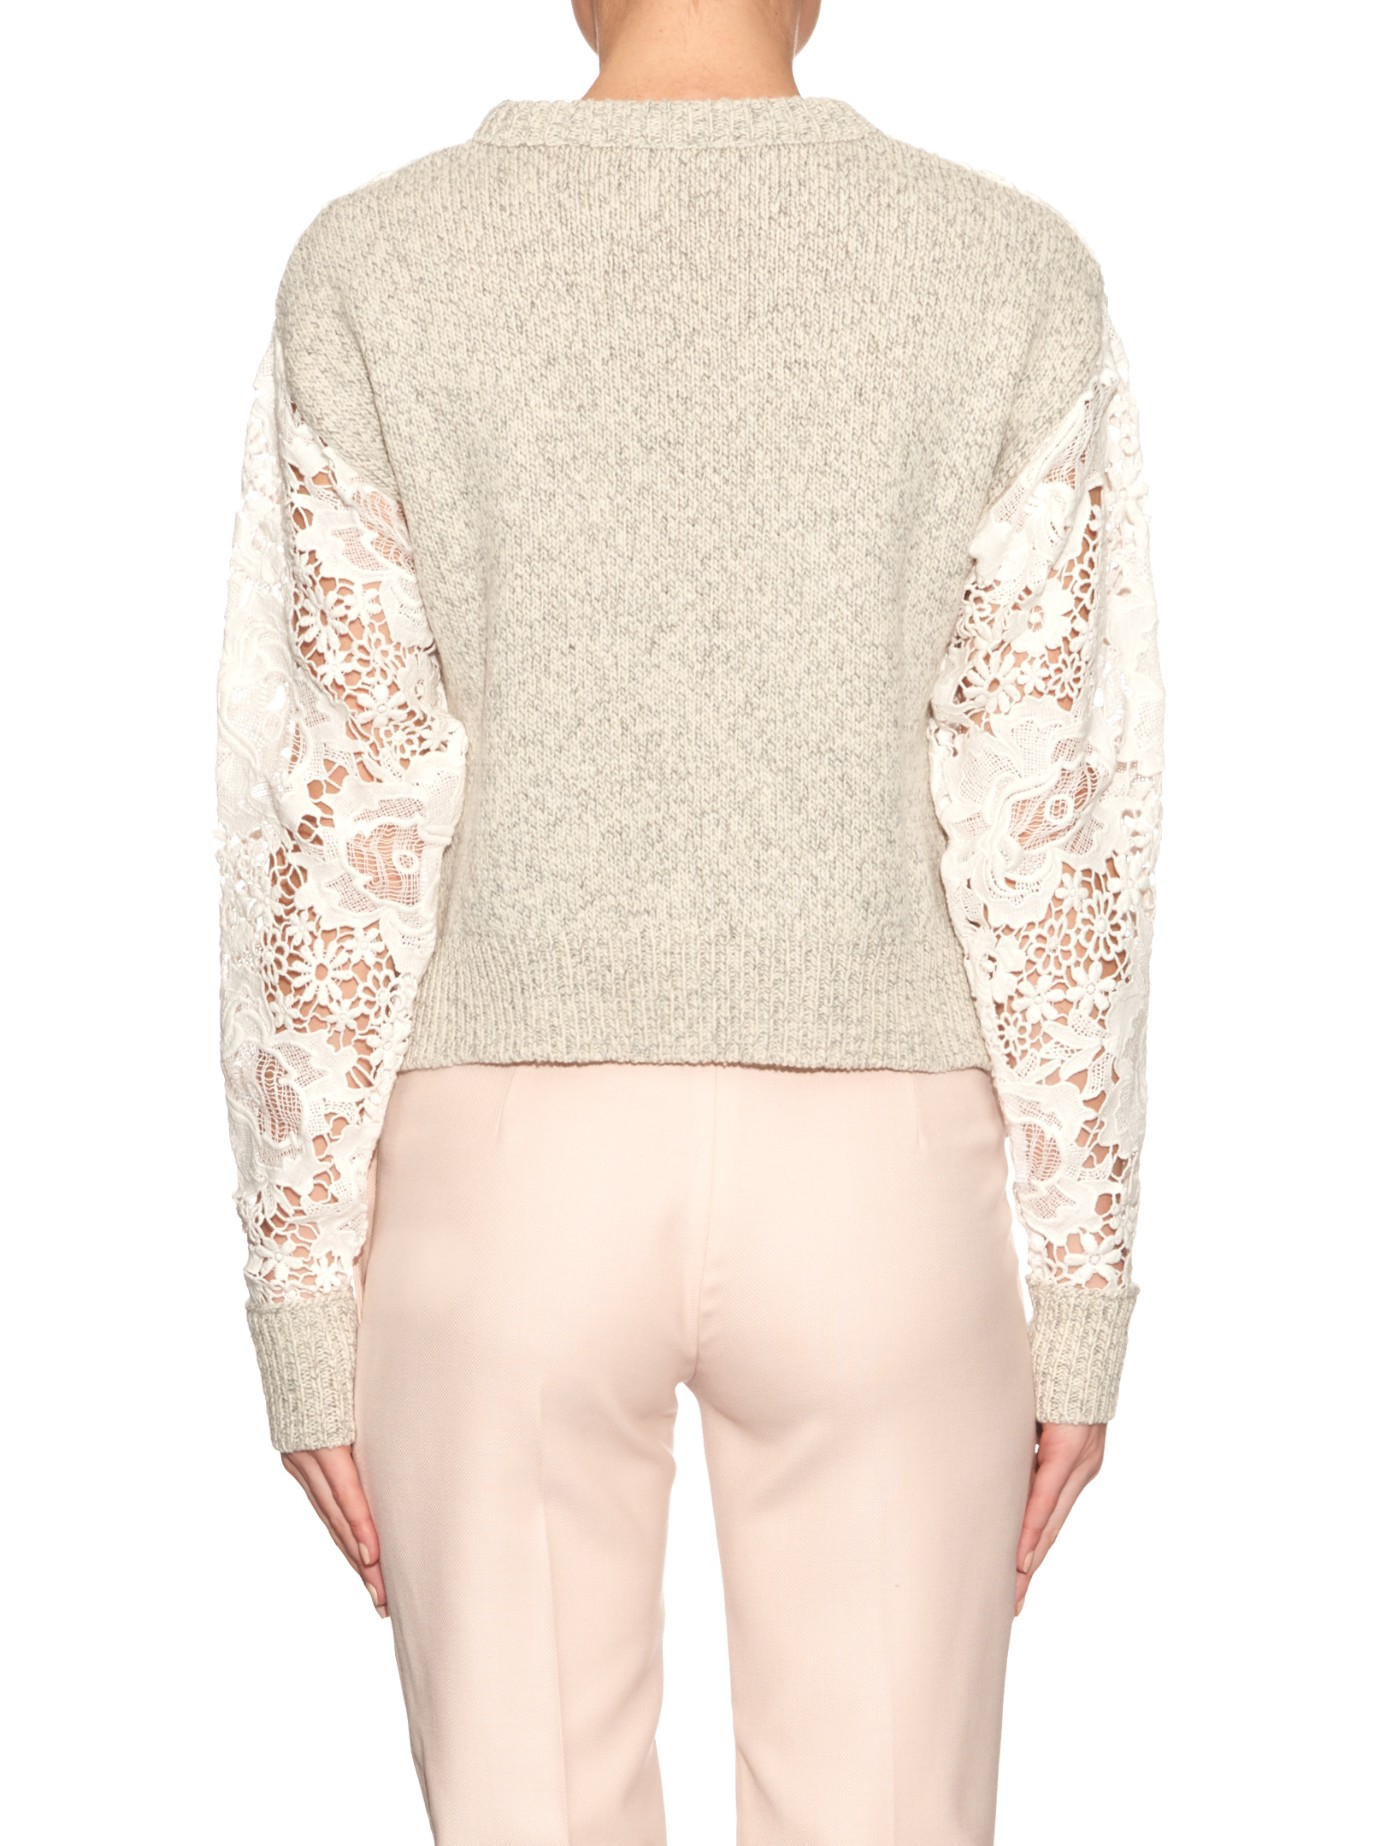 See by chloé Floral-lace And Wool-knit Sweater in White | Lyst